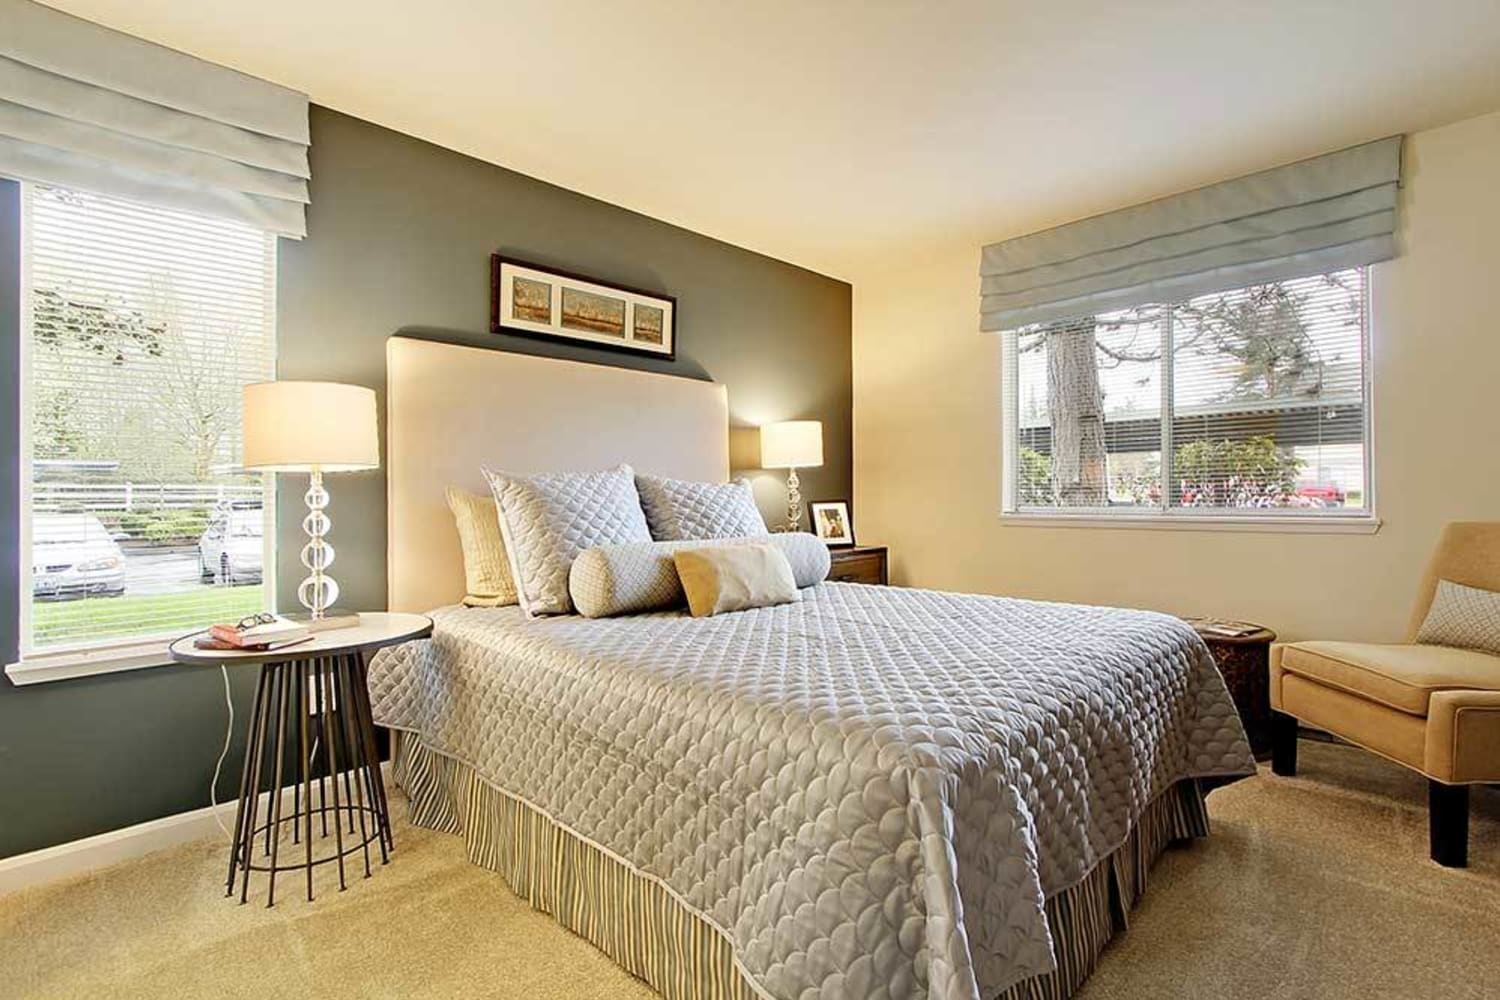 Bedroom at Campbell Run Apartments in Woodinville, Washington